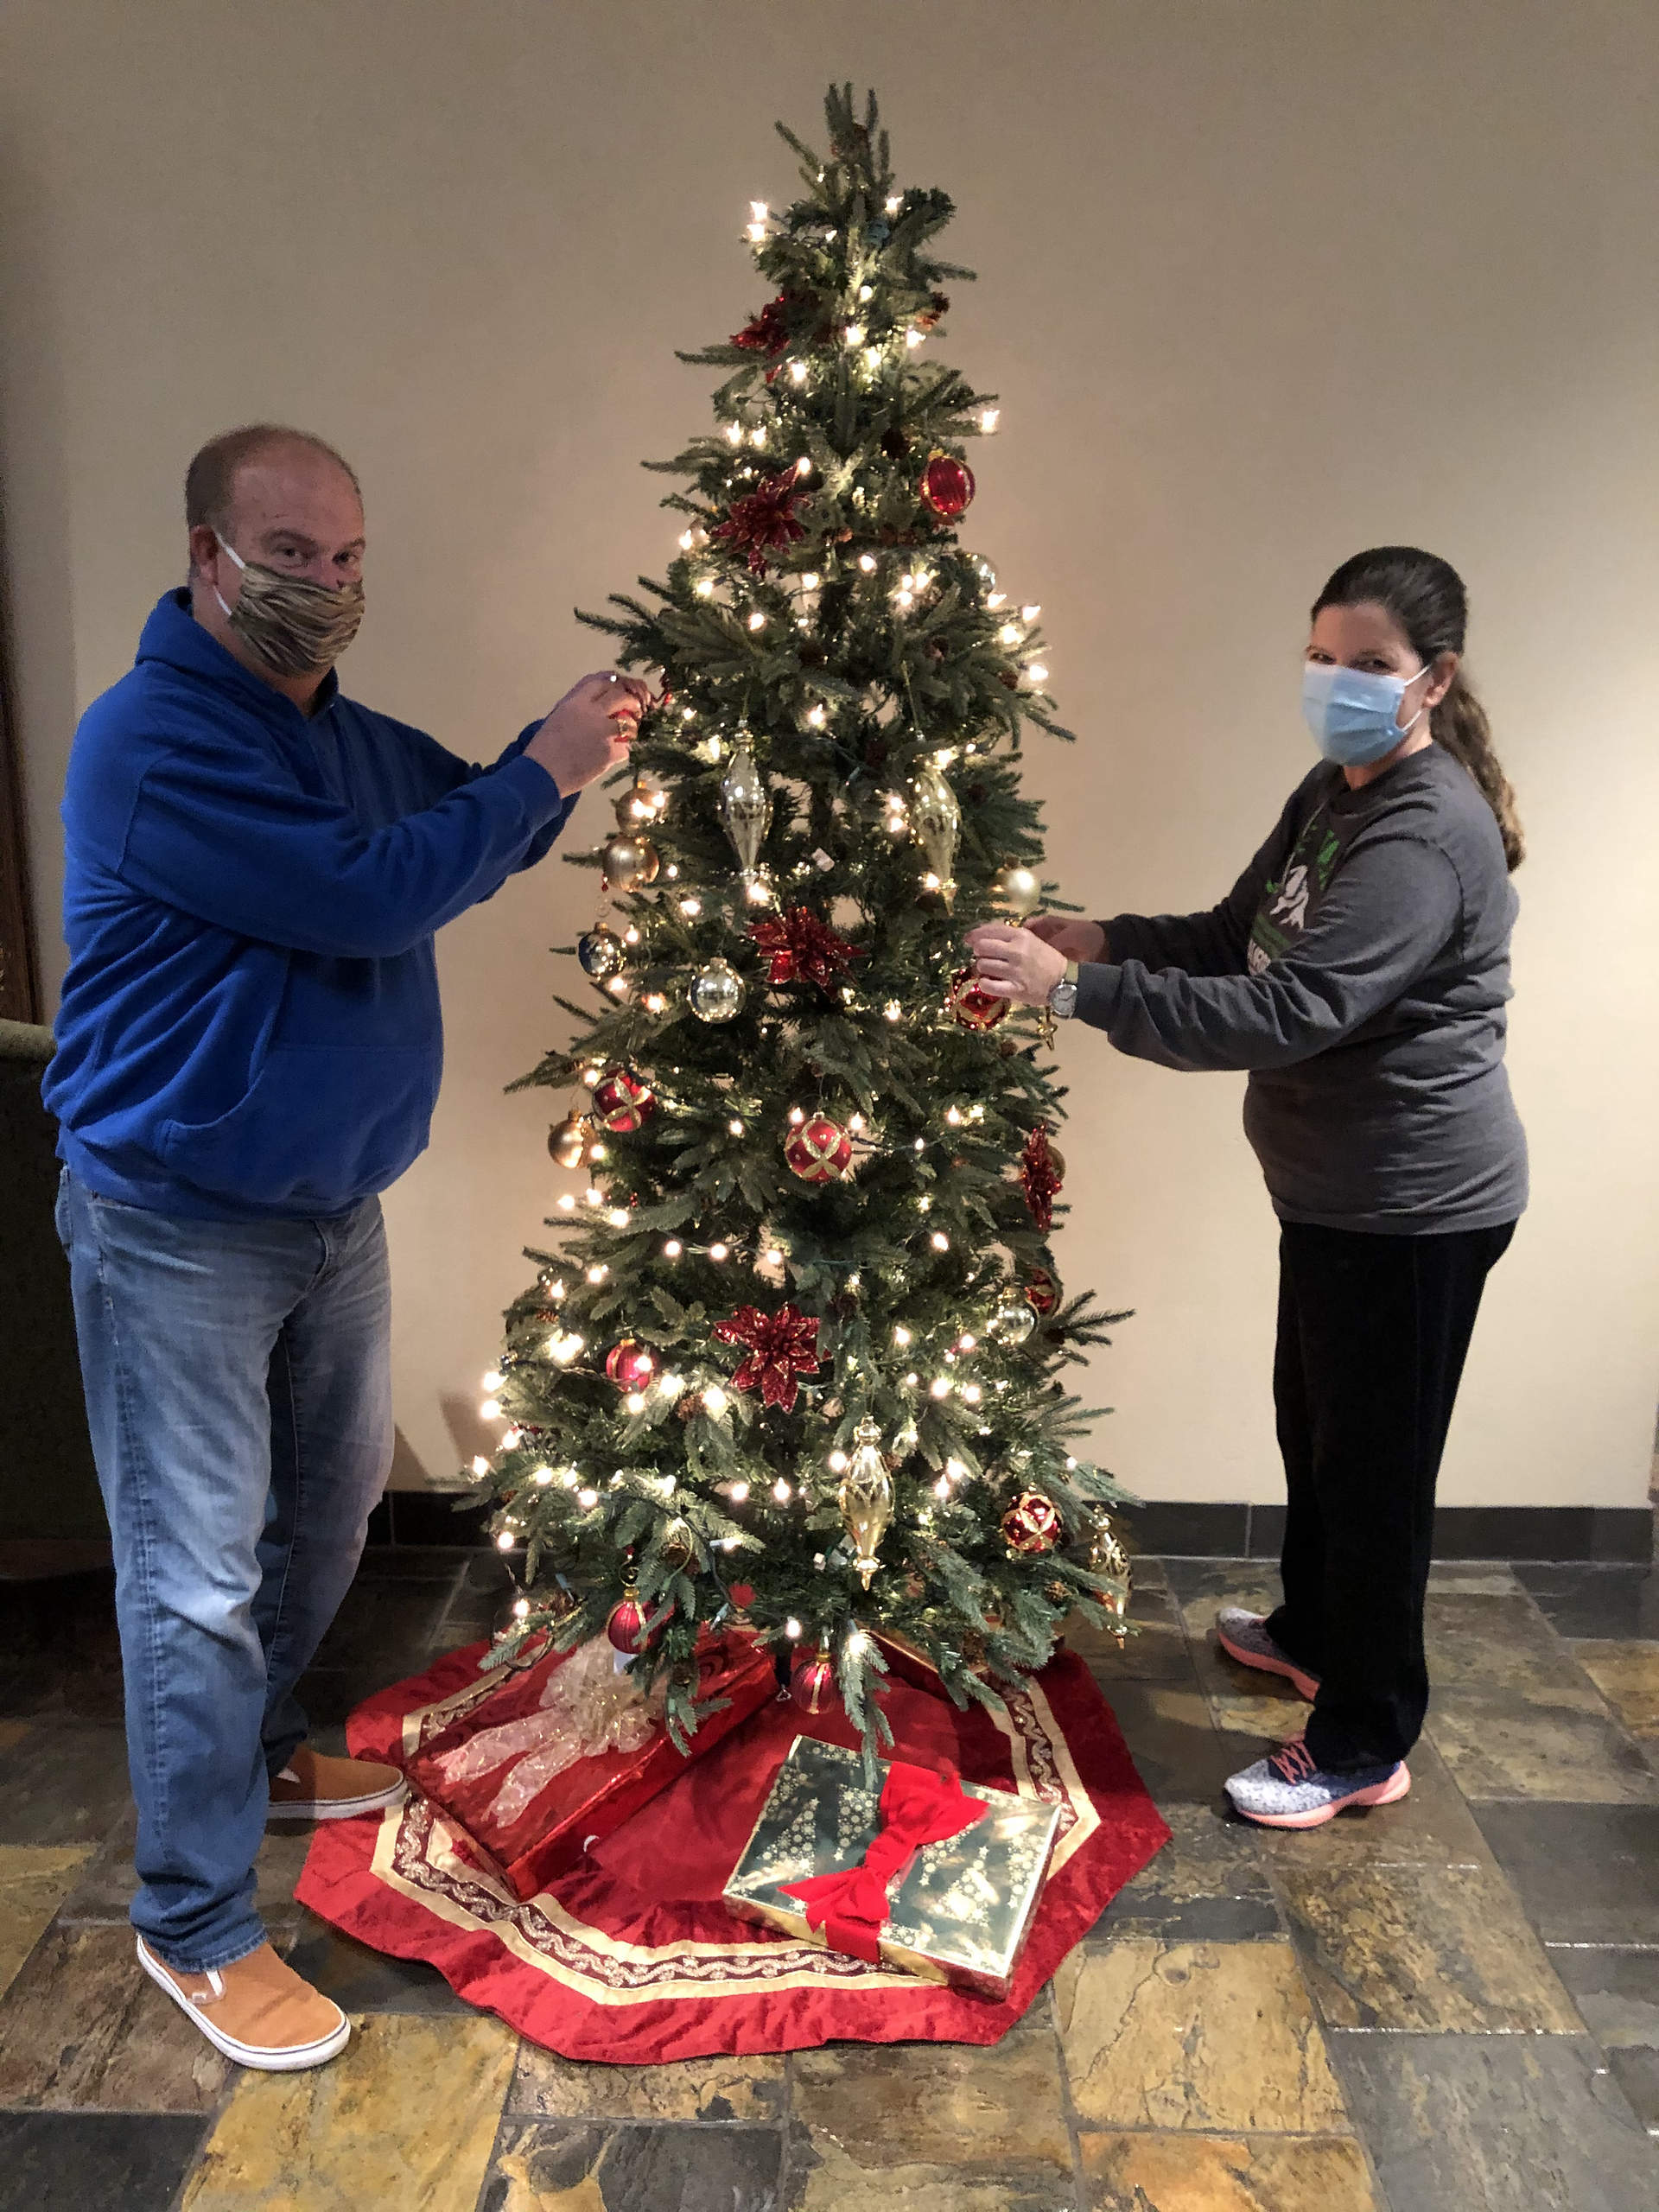 And then we've got two last decorating elves caught on camera!